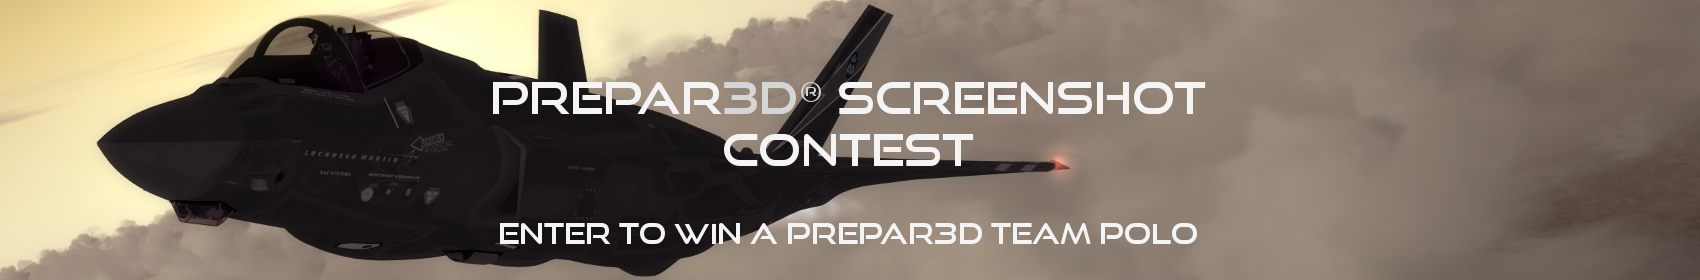 Screenshot Contest